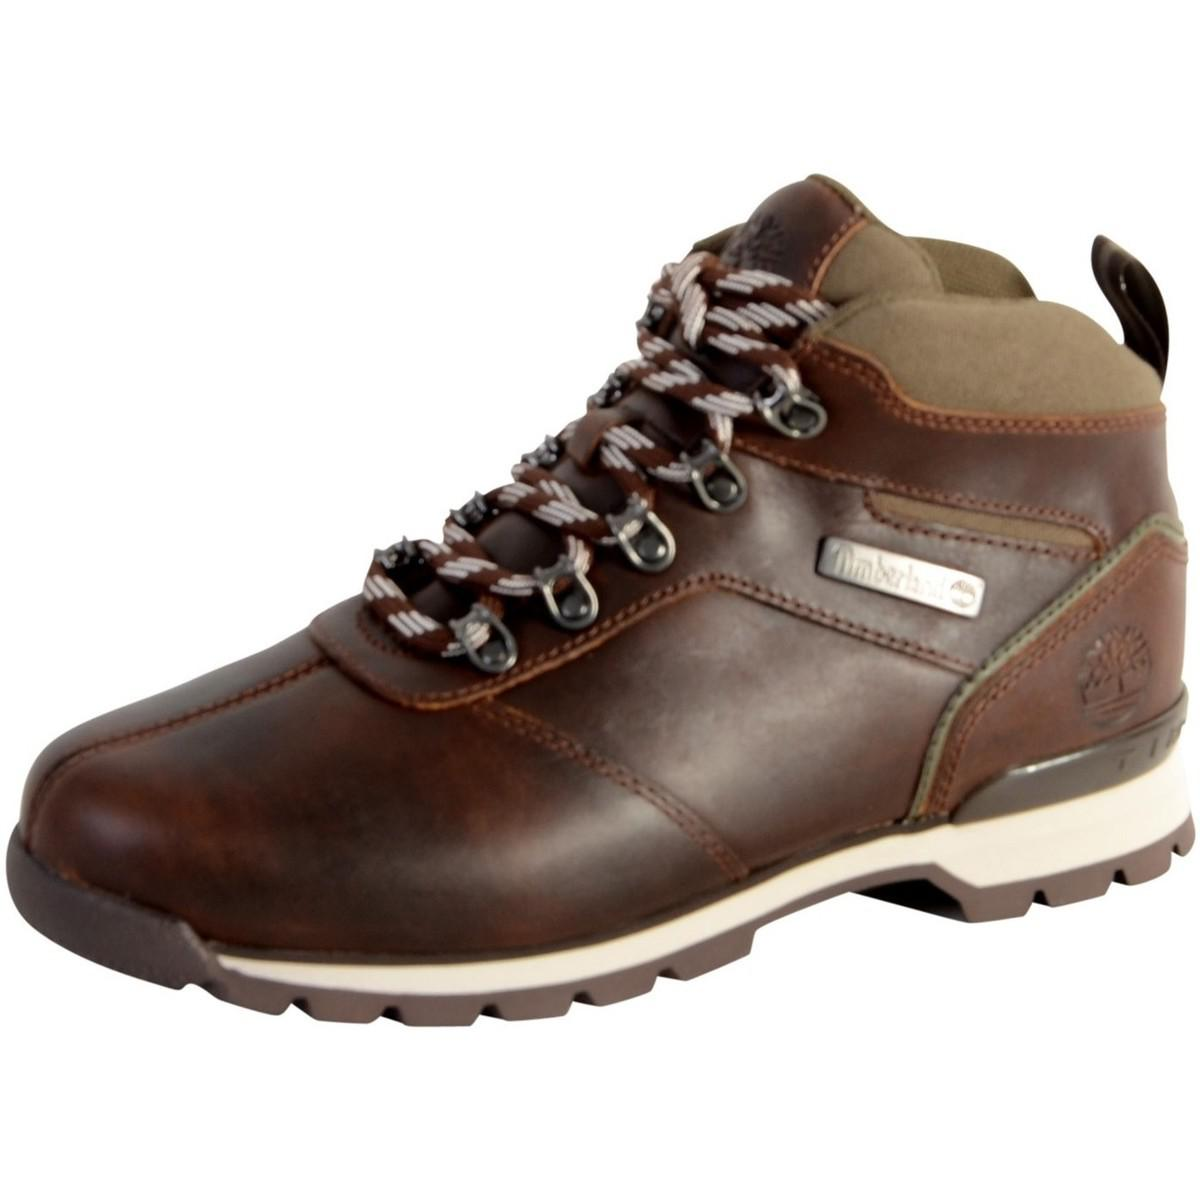 Timberland Shoes A1hn9 Splitrock 2 Tobacco Women s Walking Boots In ... f5da63c38